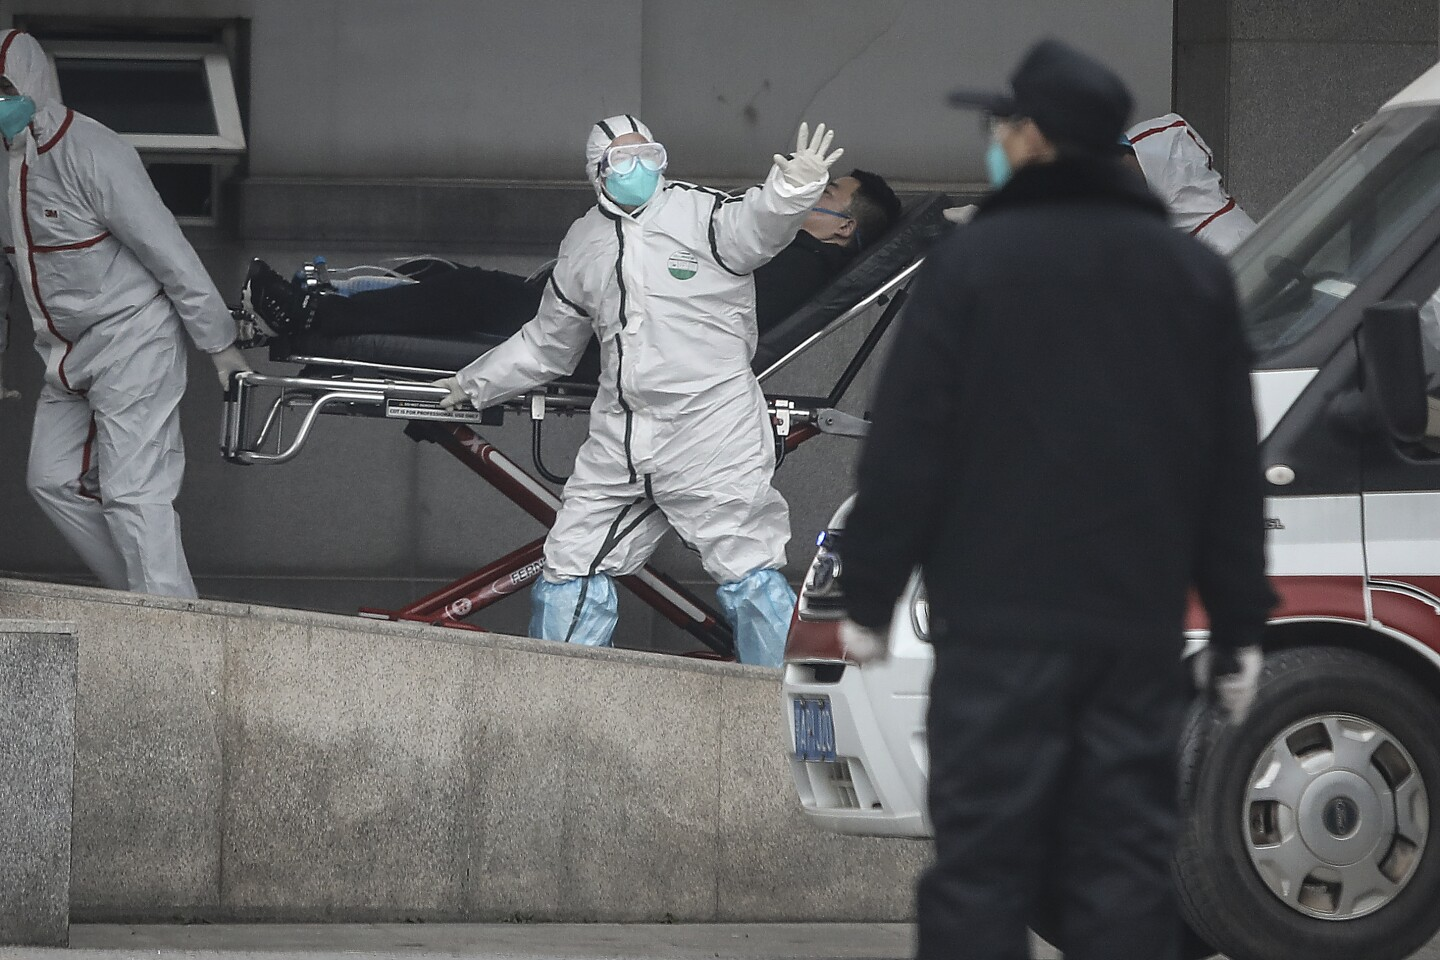 Two medical workers in white personal protective gear wave as they wheel a face mask-wearing man in a stretcher.